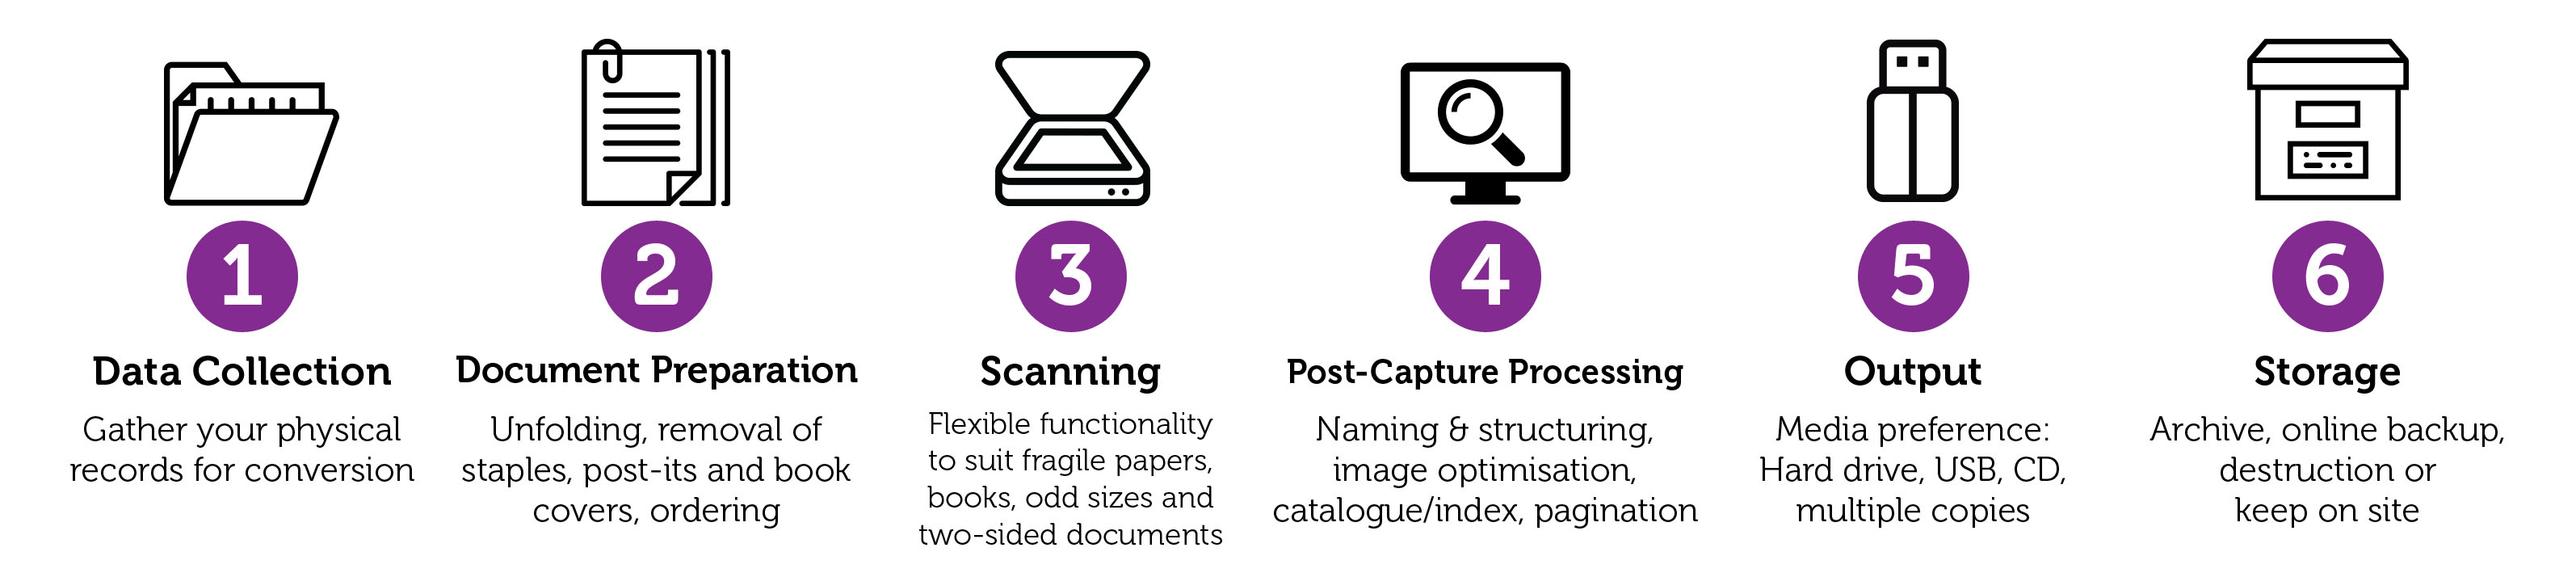 Scanning Process Infographic